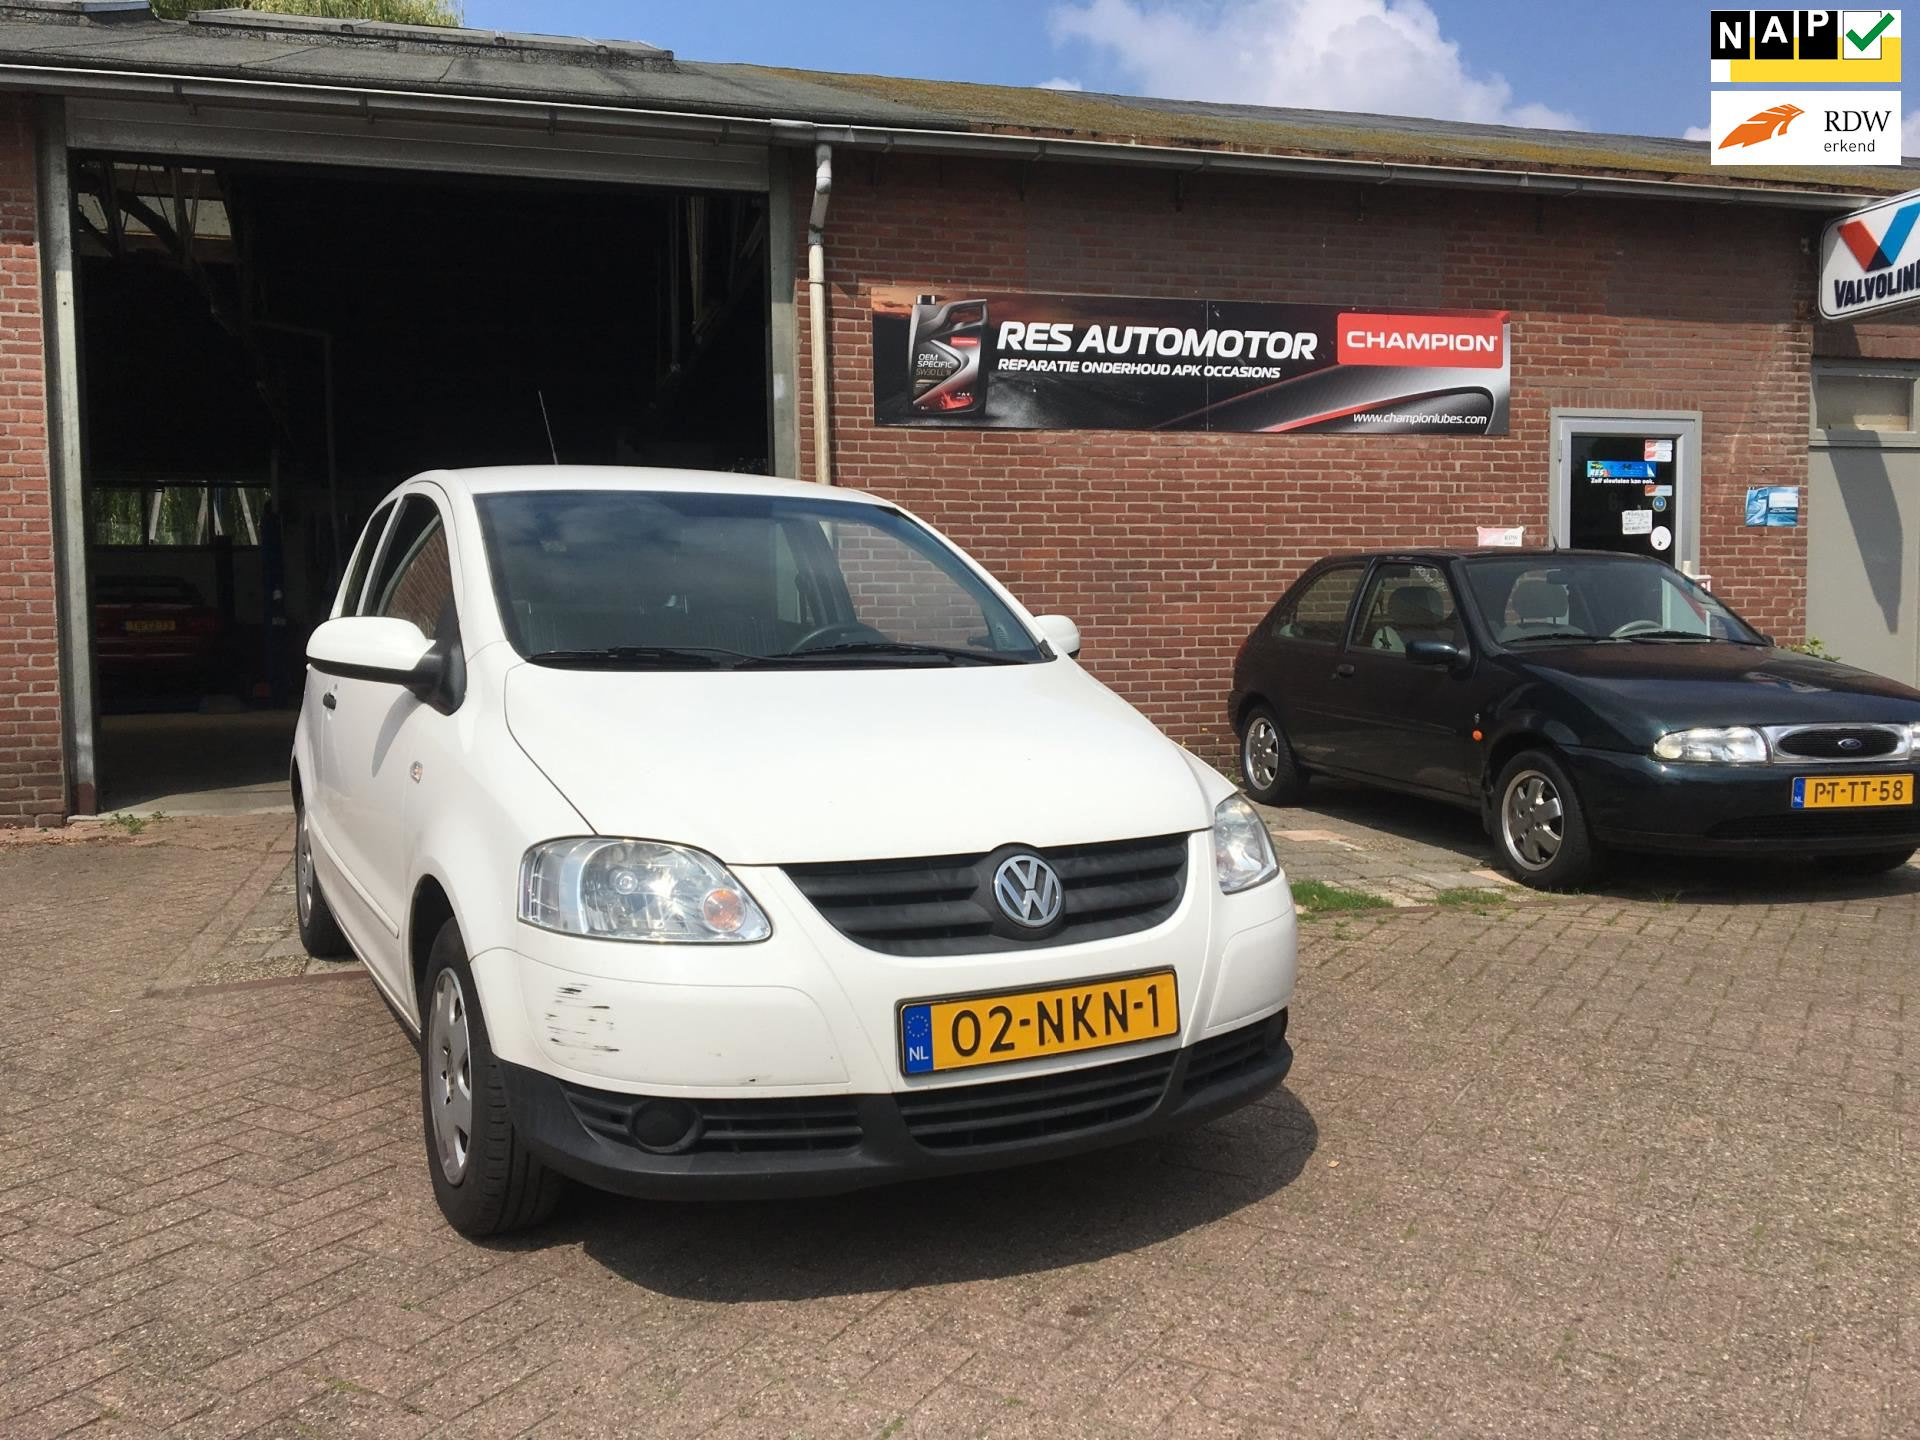 Volkswagen Fox occasion - RESAUTOMOTOR